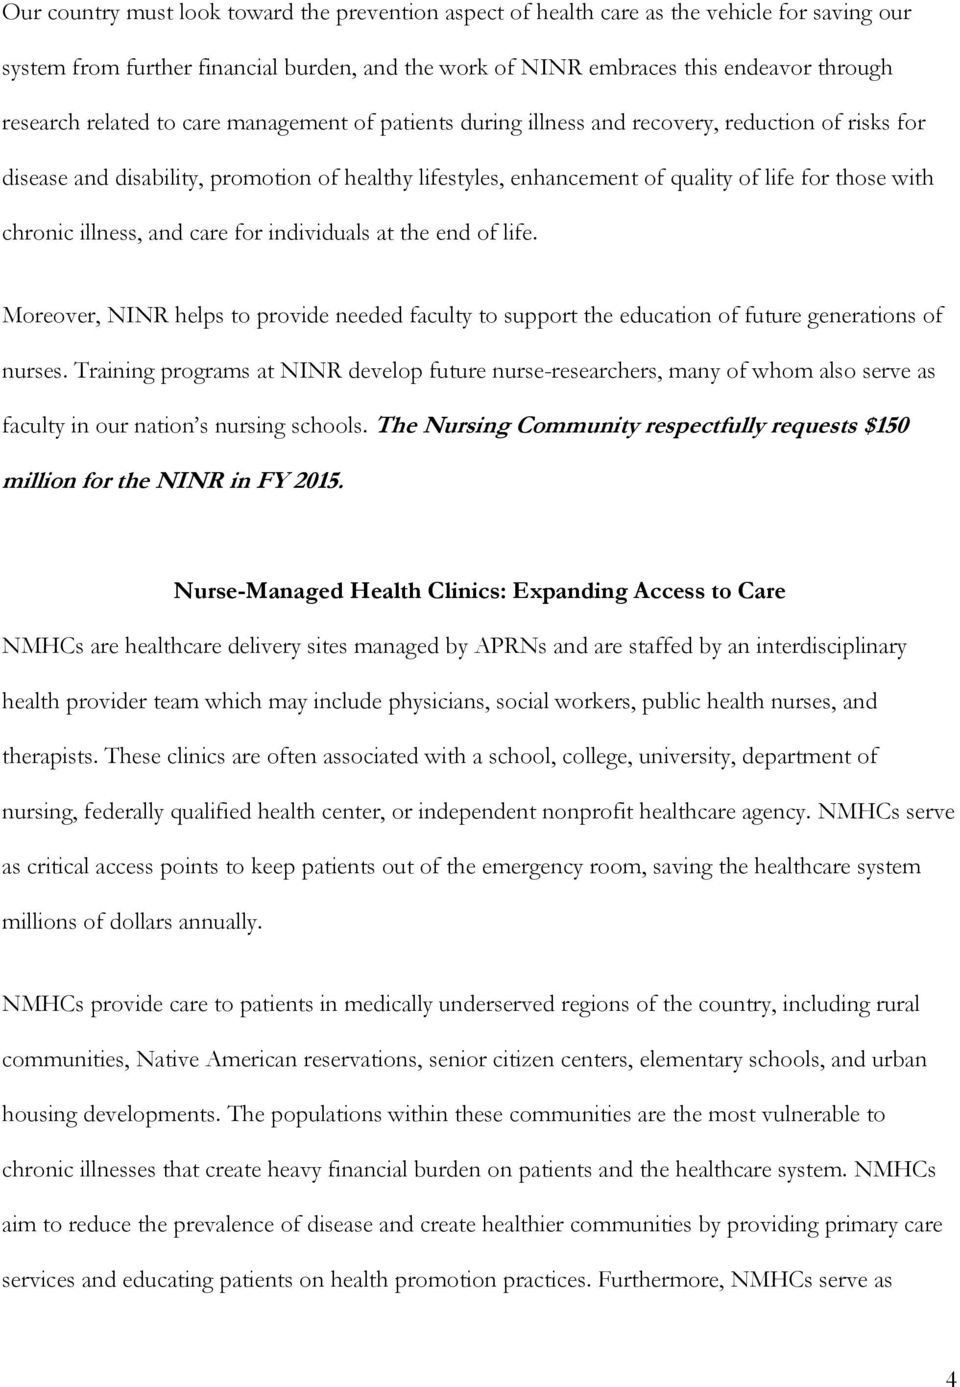 chronic illness, and care for individuals at the end of life. Moreover, NINR helps to provide needed faculty to support the education of future generations of nurses.